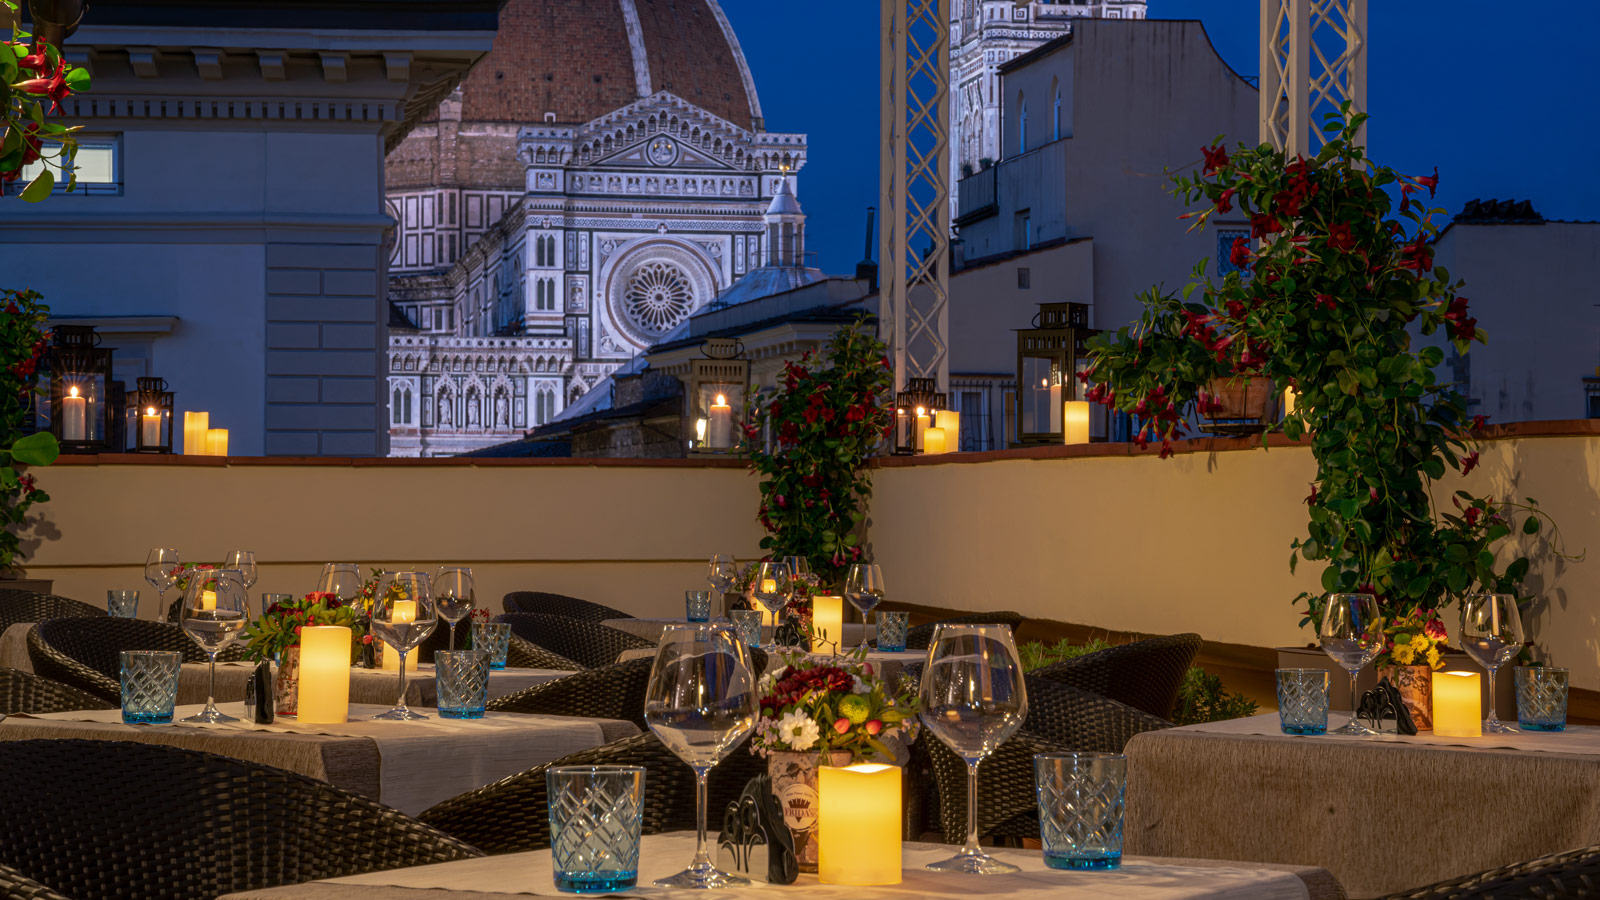 Hotel In Florence With Aperitif On The Terrace With View Of